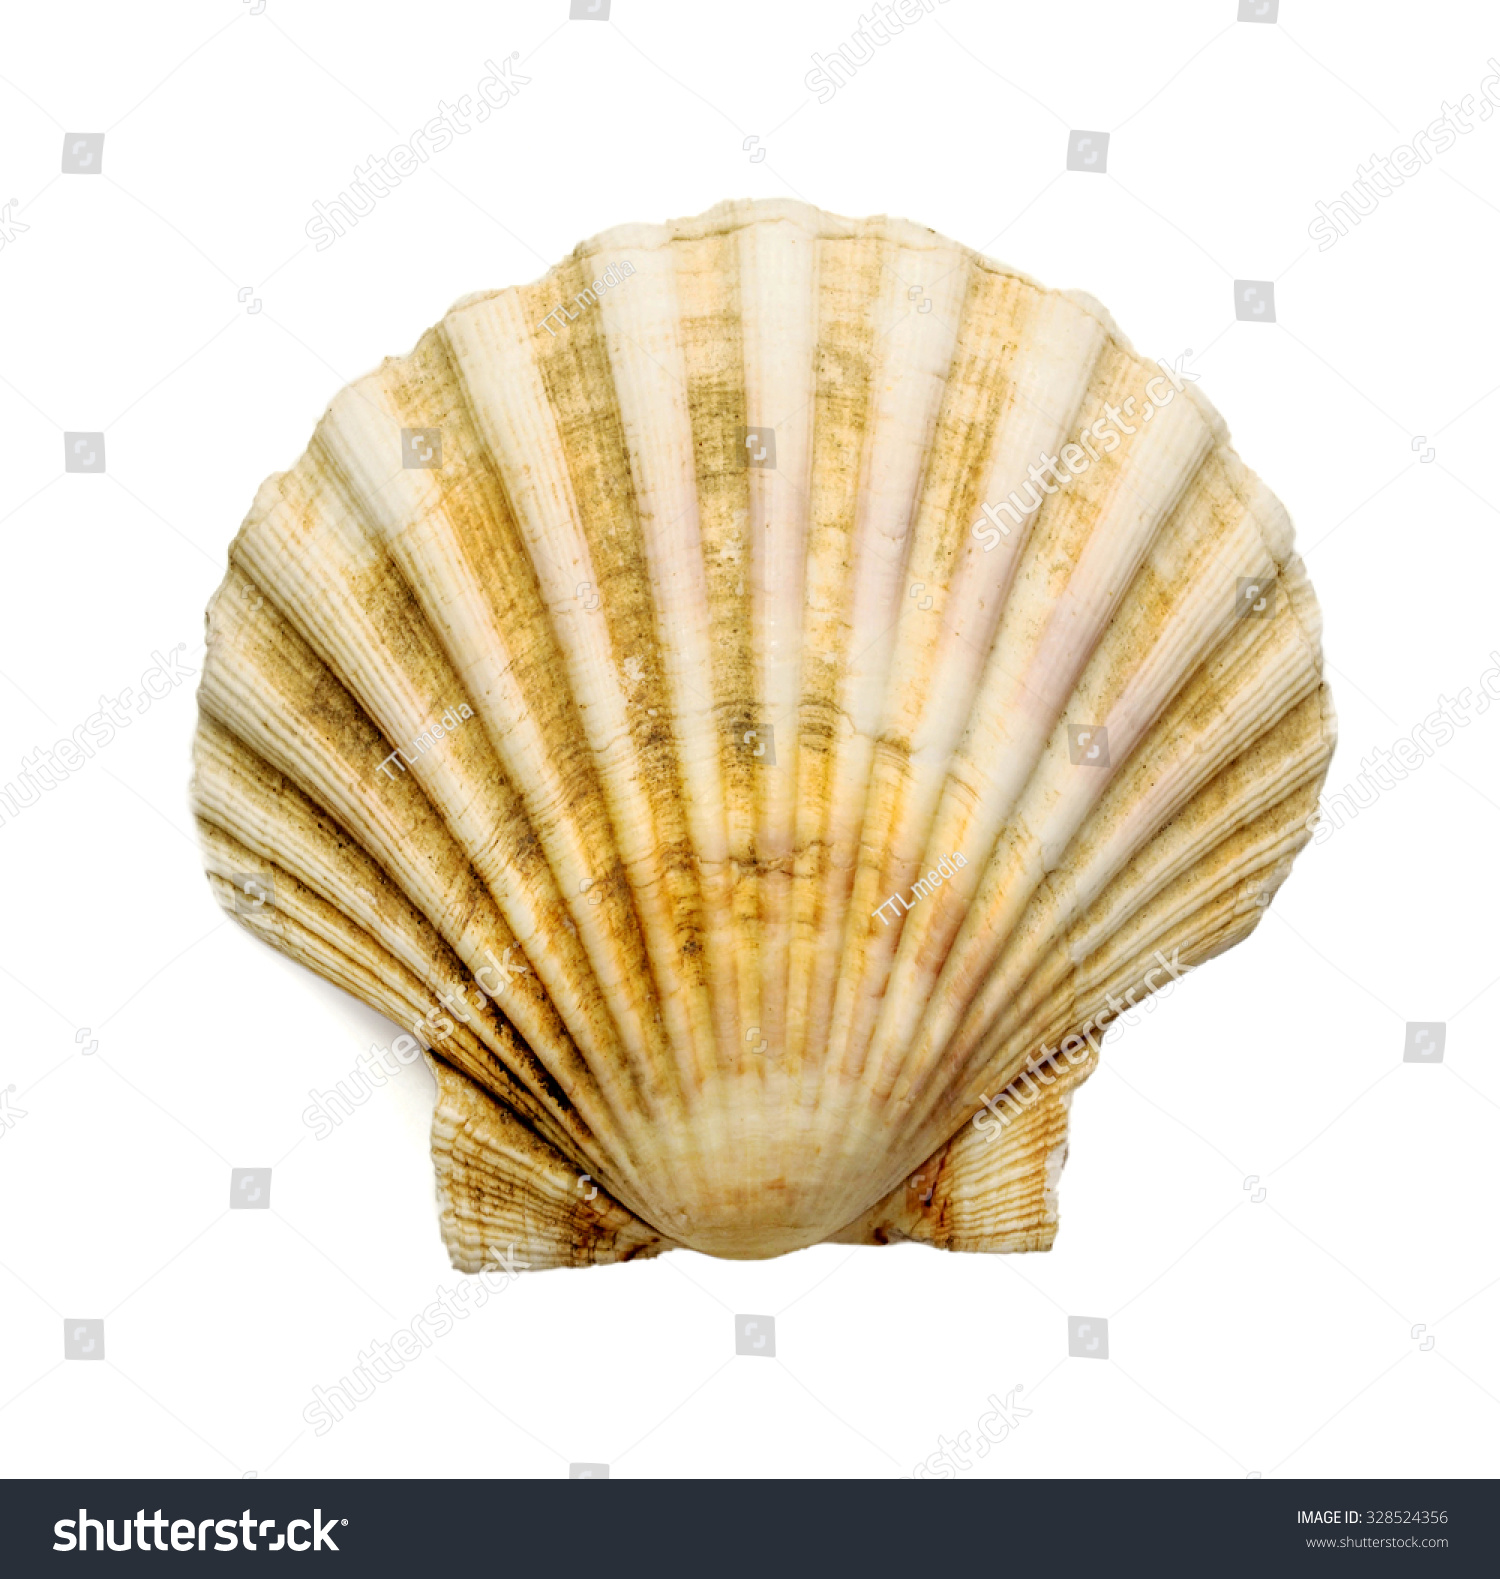 Scallop shell over white background stock photo 328524356 shutterstock scallop shell over white background biocorpaavc Image collections